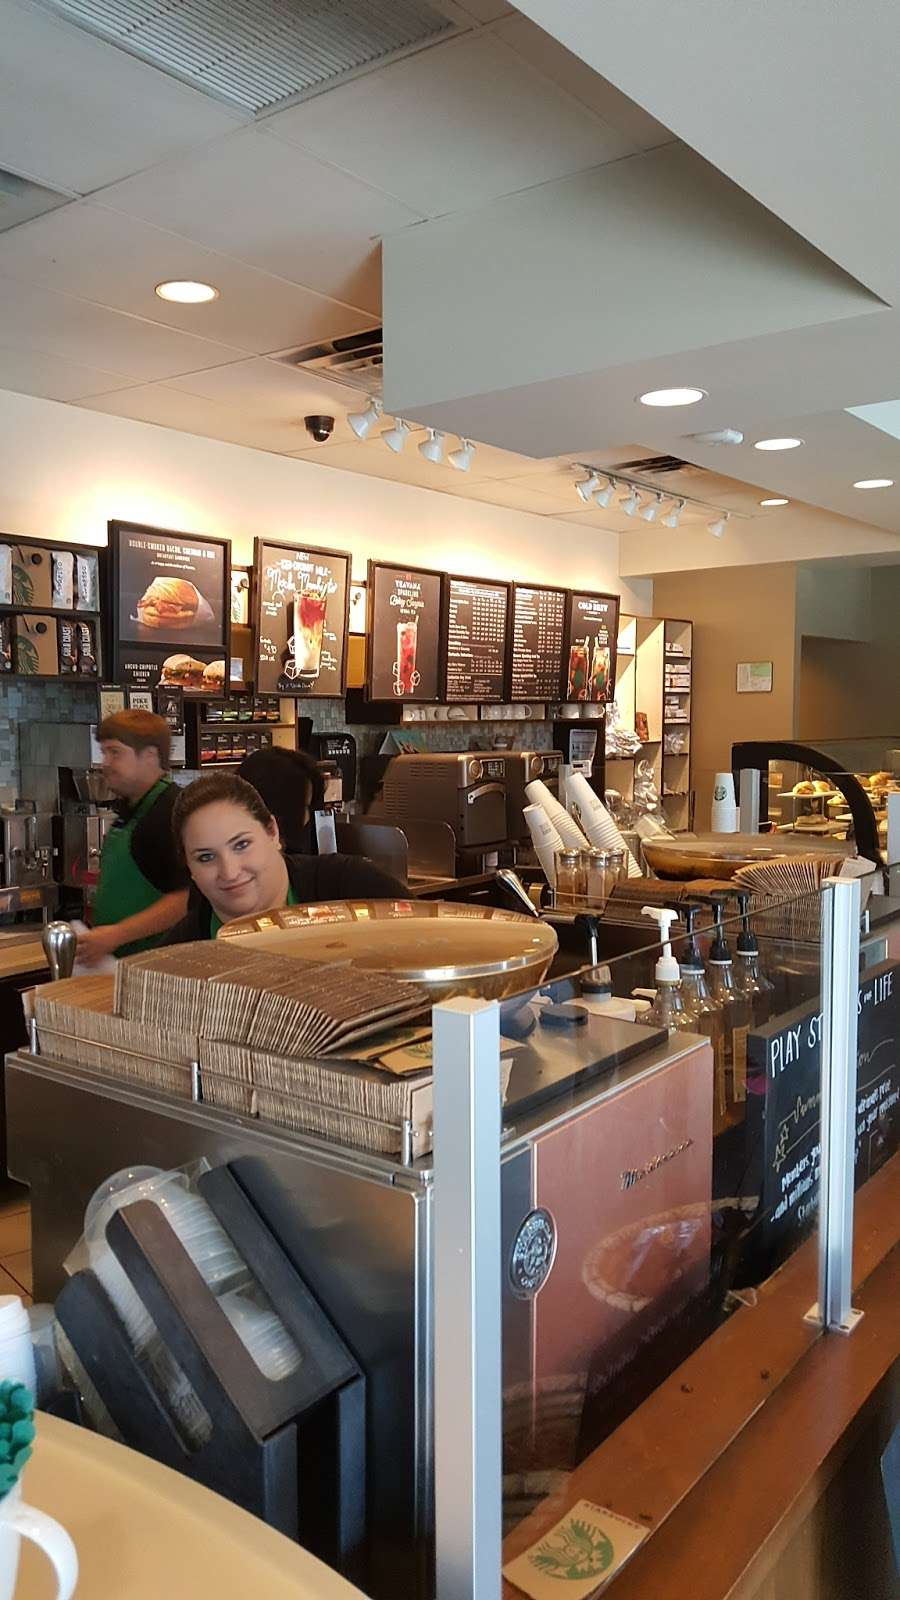 Starbucks - cafe  | Photo 9 of 10 | Address: 7876 Valley View St, Buena Park, CA 90620, USA | Phone: (714) 228-9827